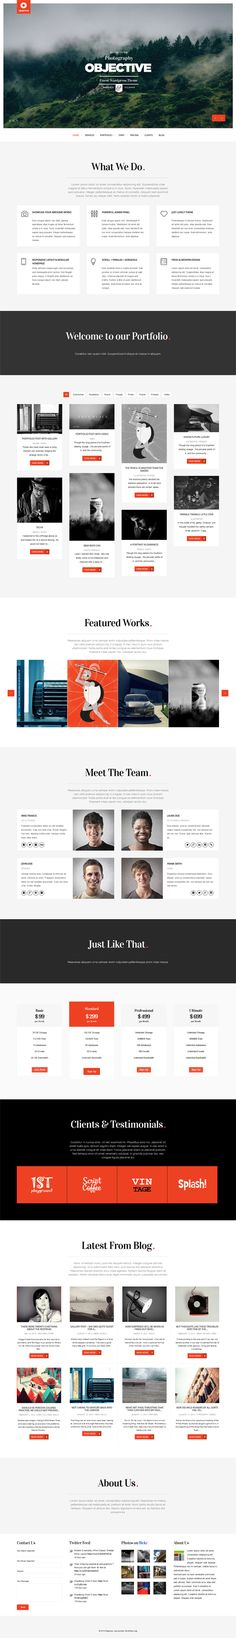 Objective - Responsive Portfolio Photography Theme #portfolio #theme #wp #woprdpress #website #web #webdesign